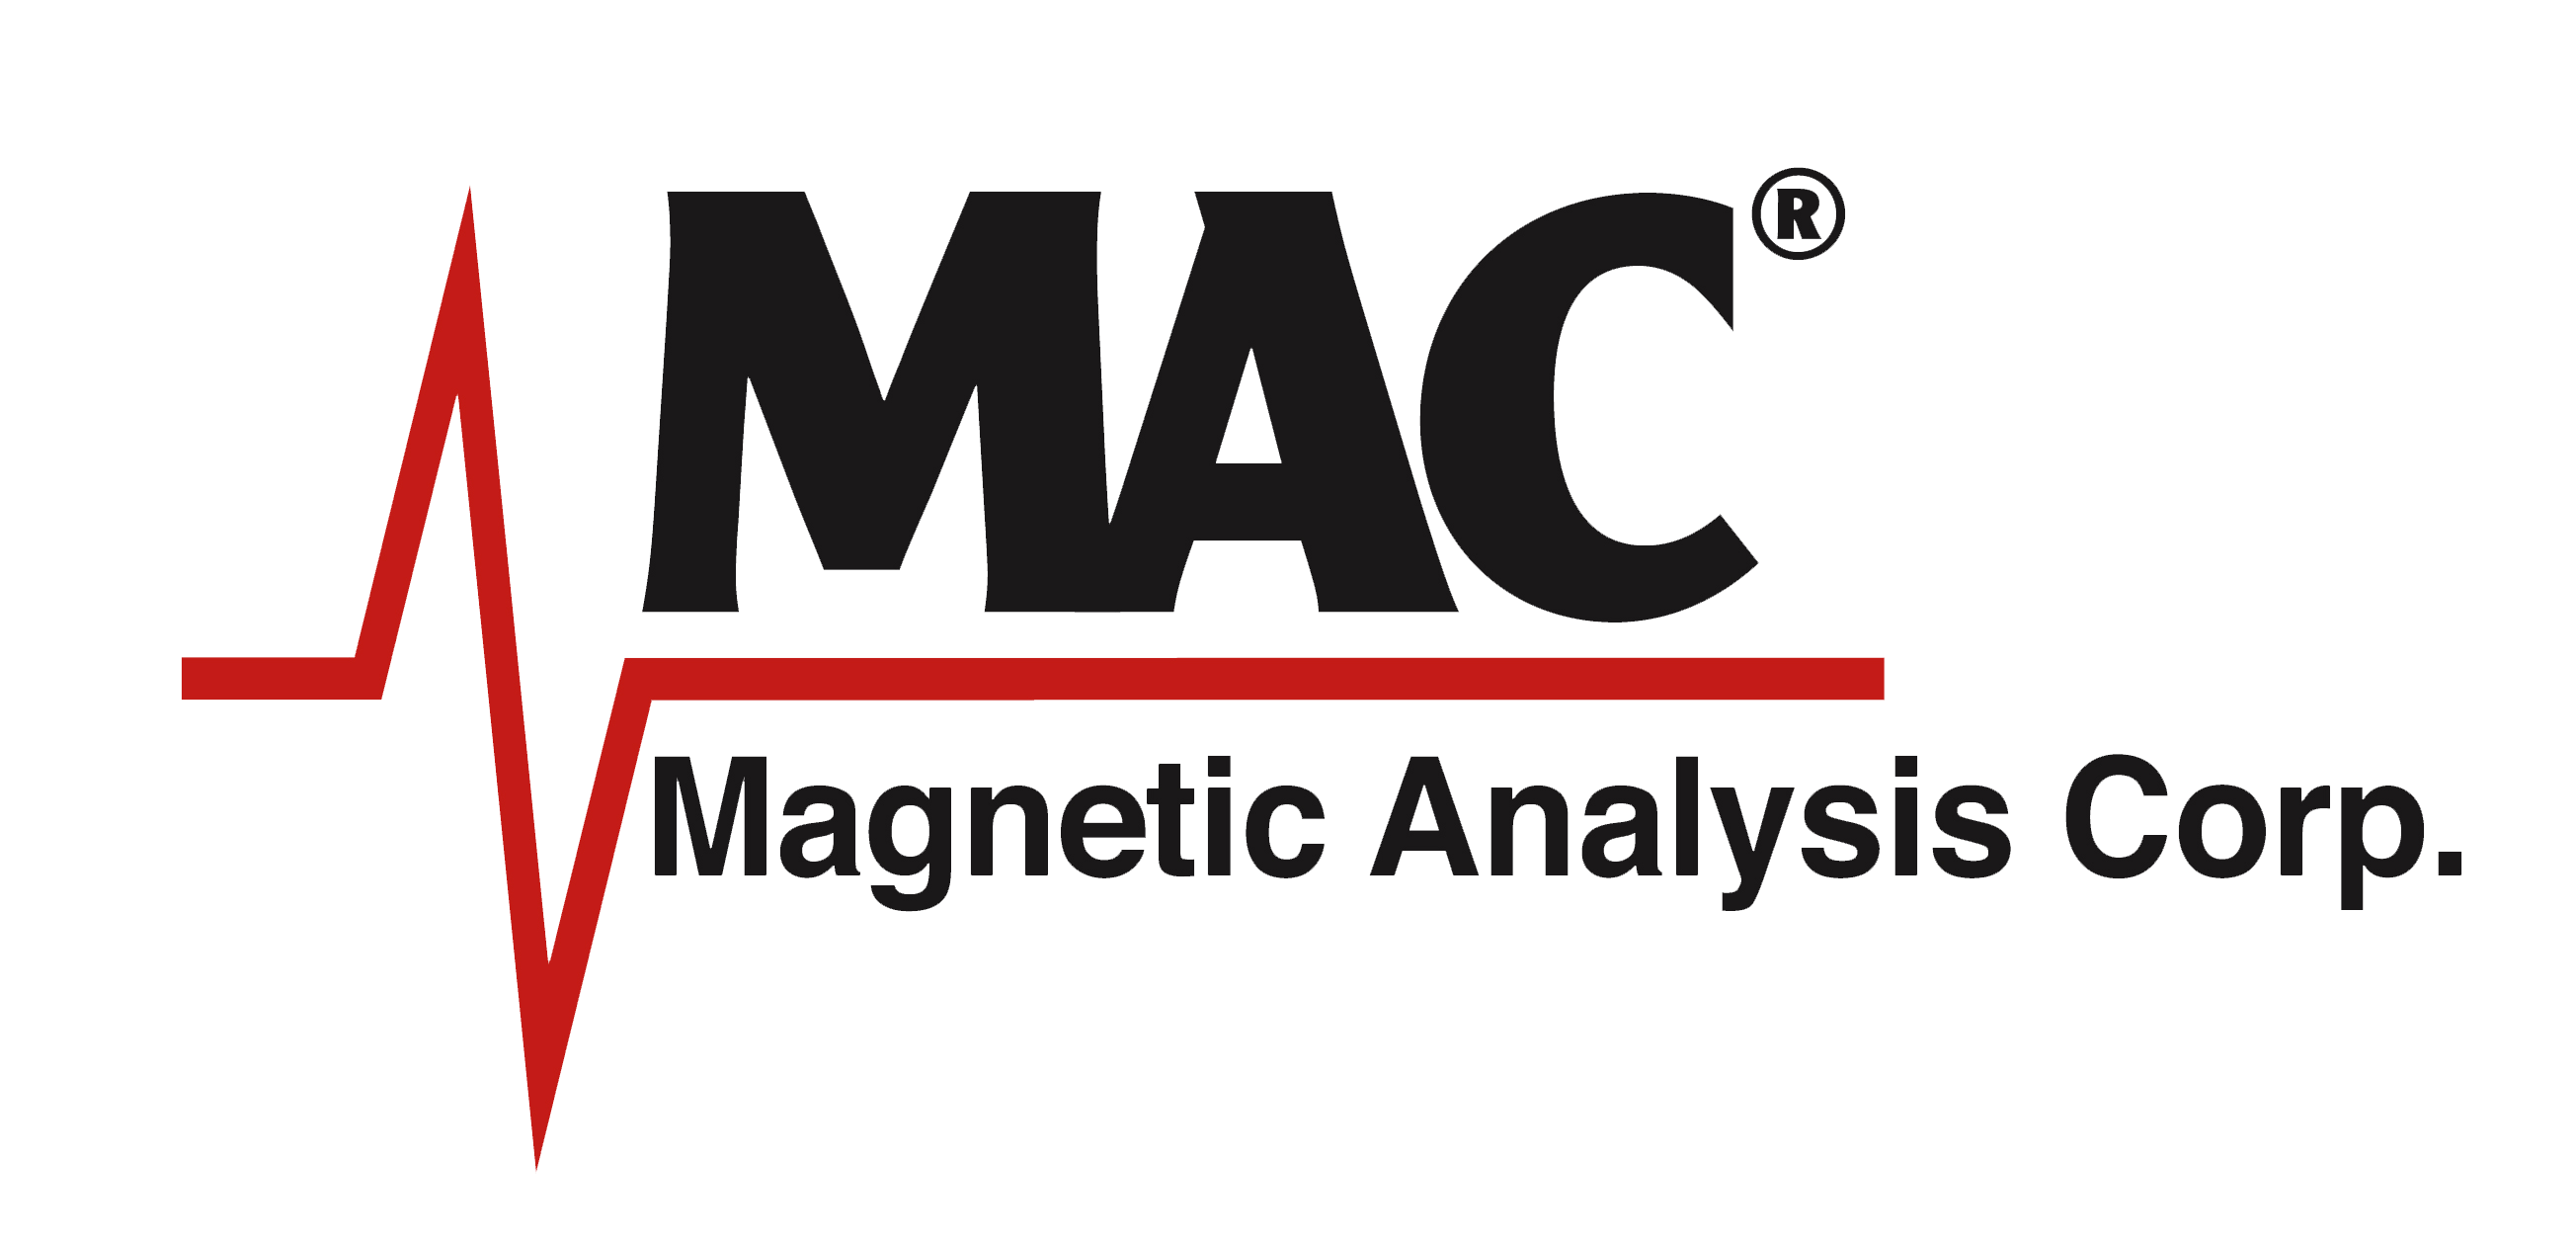 Magnetic Analysis Corporation